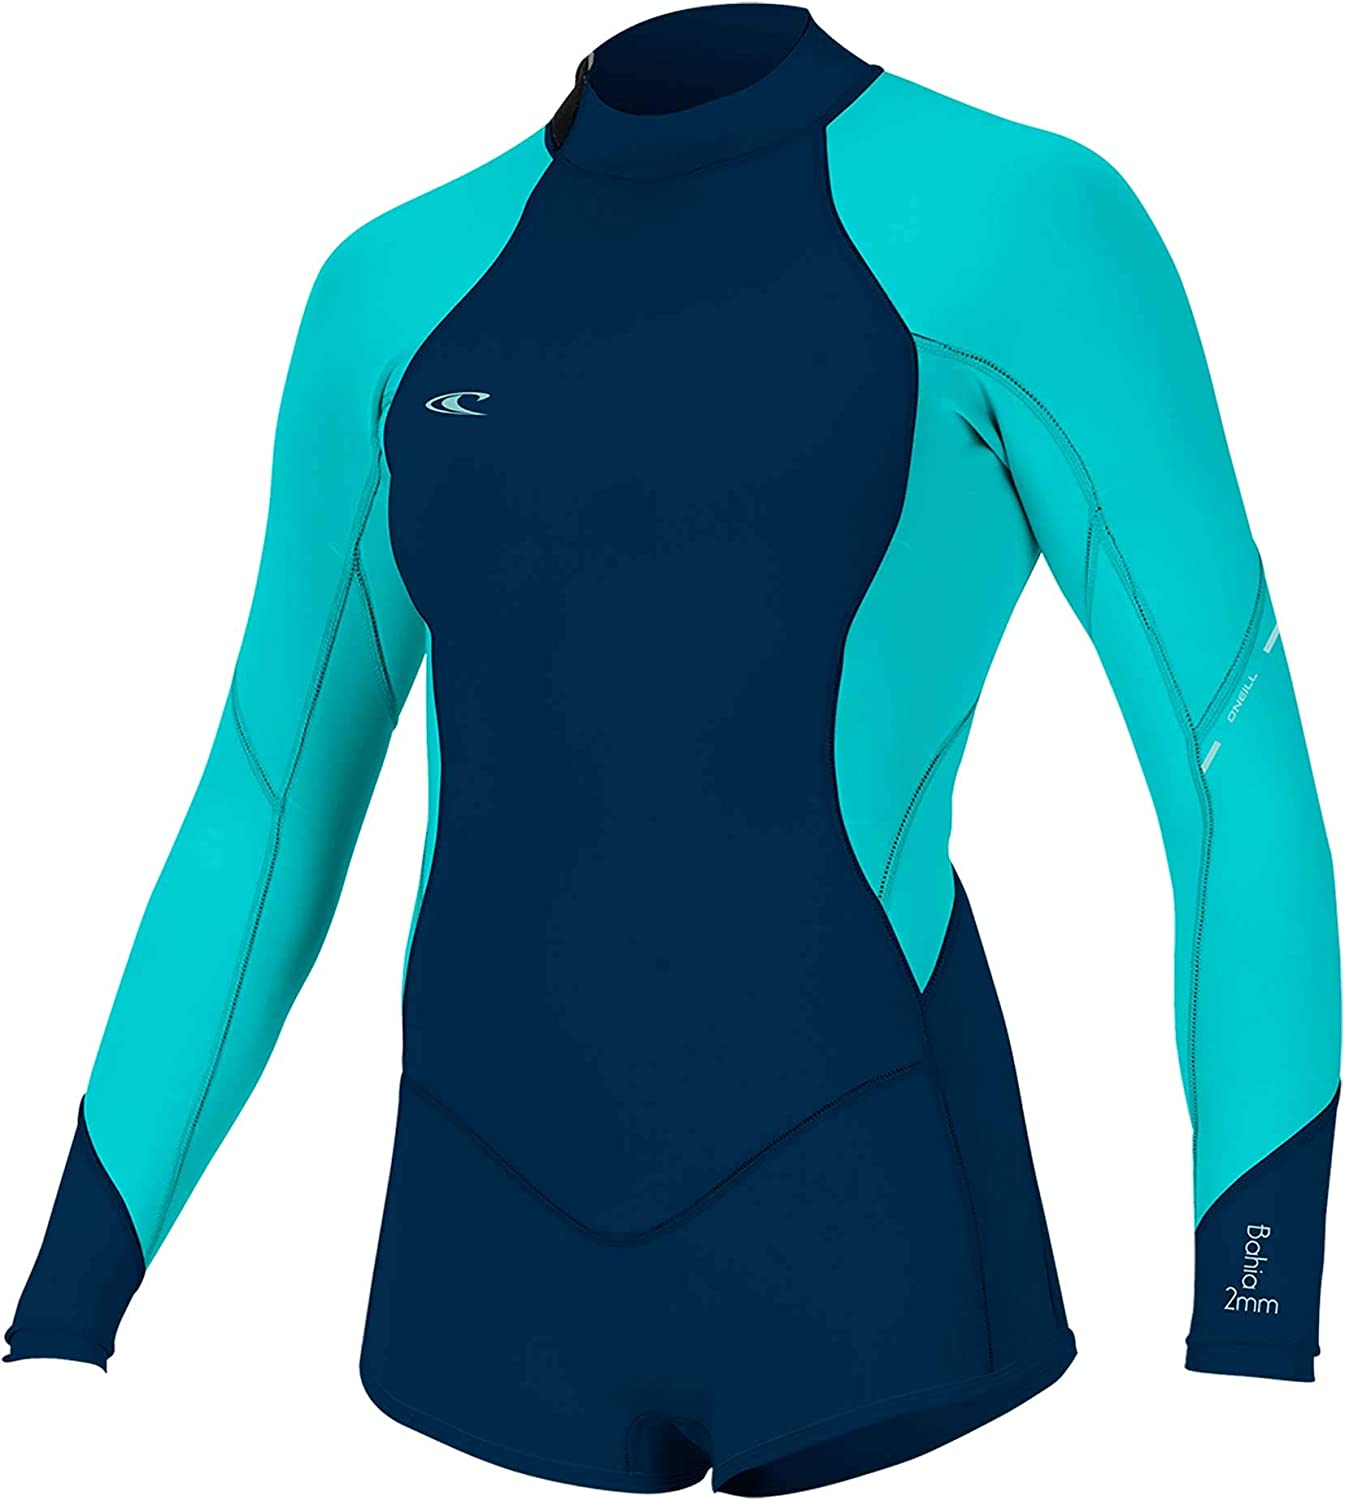 O'NEILL Girl's Bahia 2/1MM Back Zip L/S SURF Suit, DKOLIVE/Baylen/BLK, 10